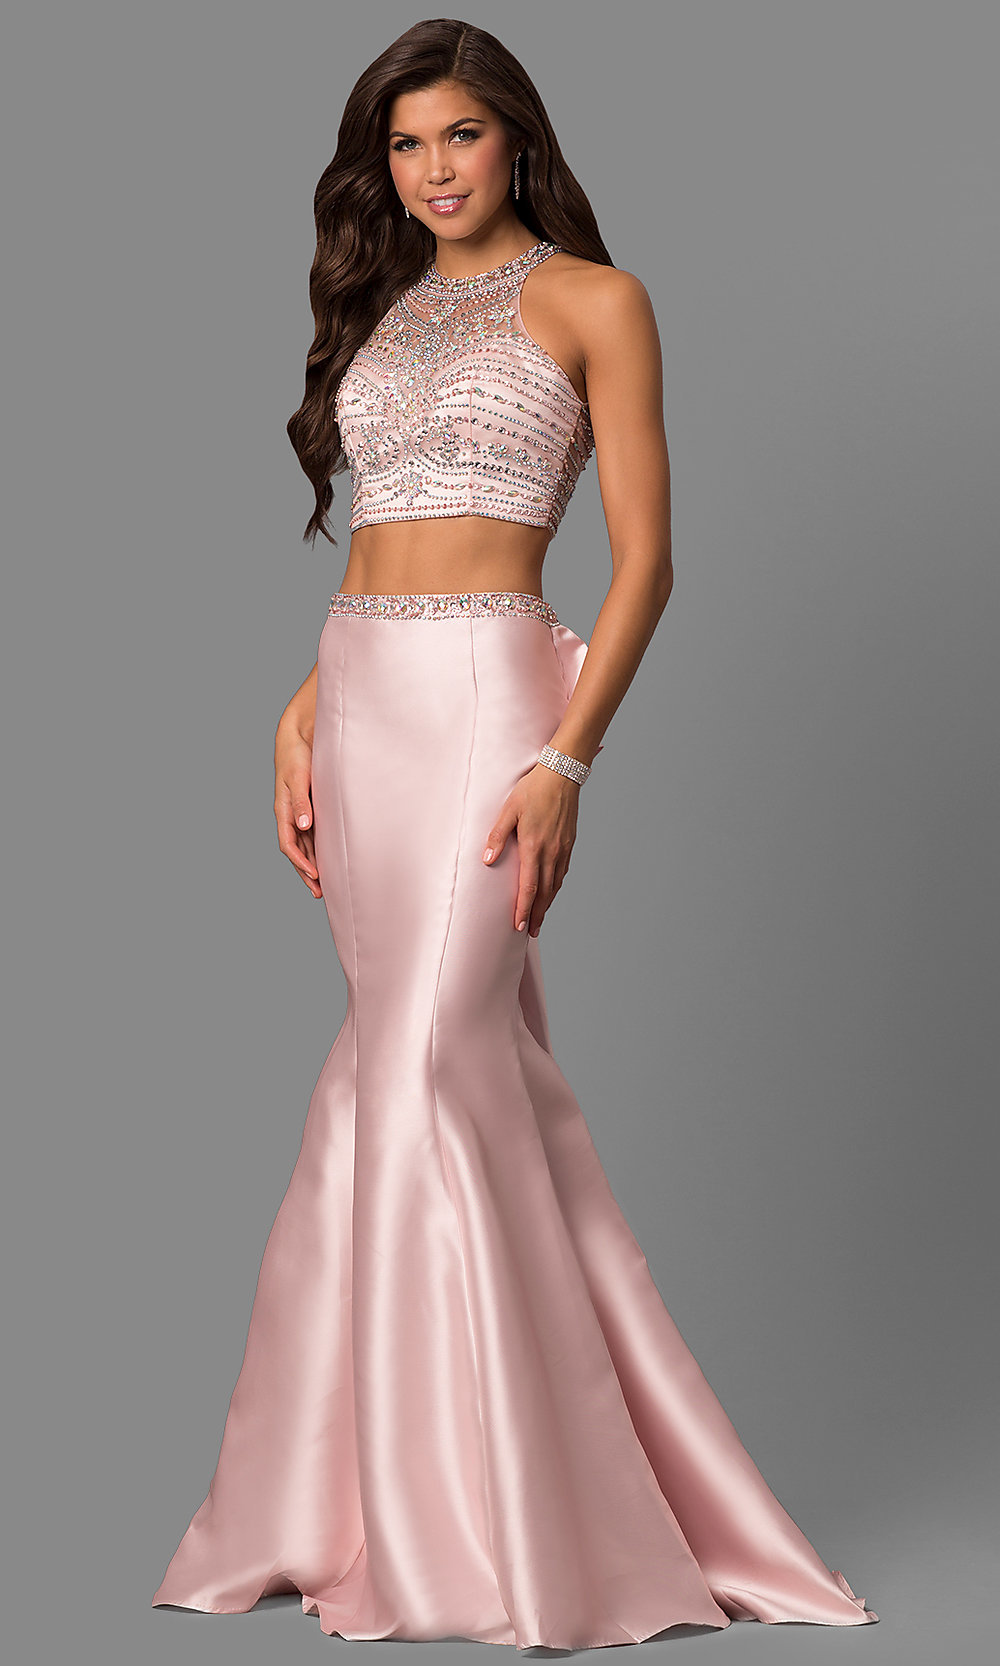 cdbf208ca208c Tap to expand · Image of long high-neck beaded-bodice prom dress ...